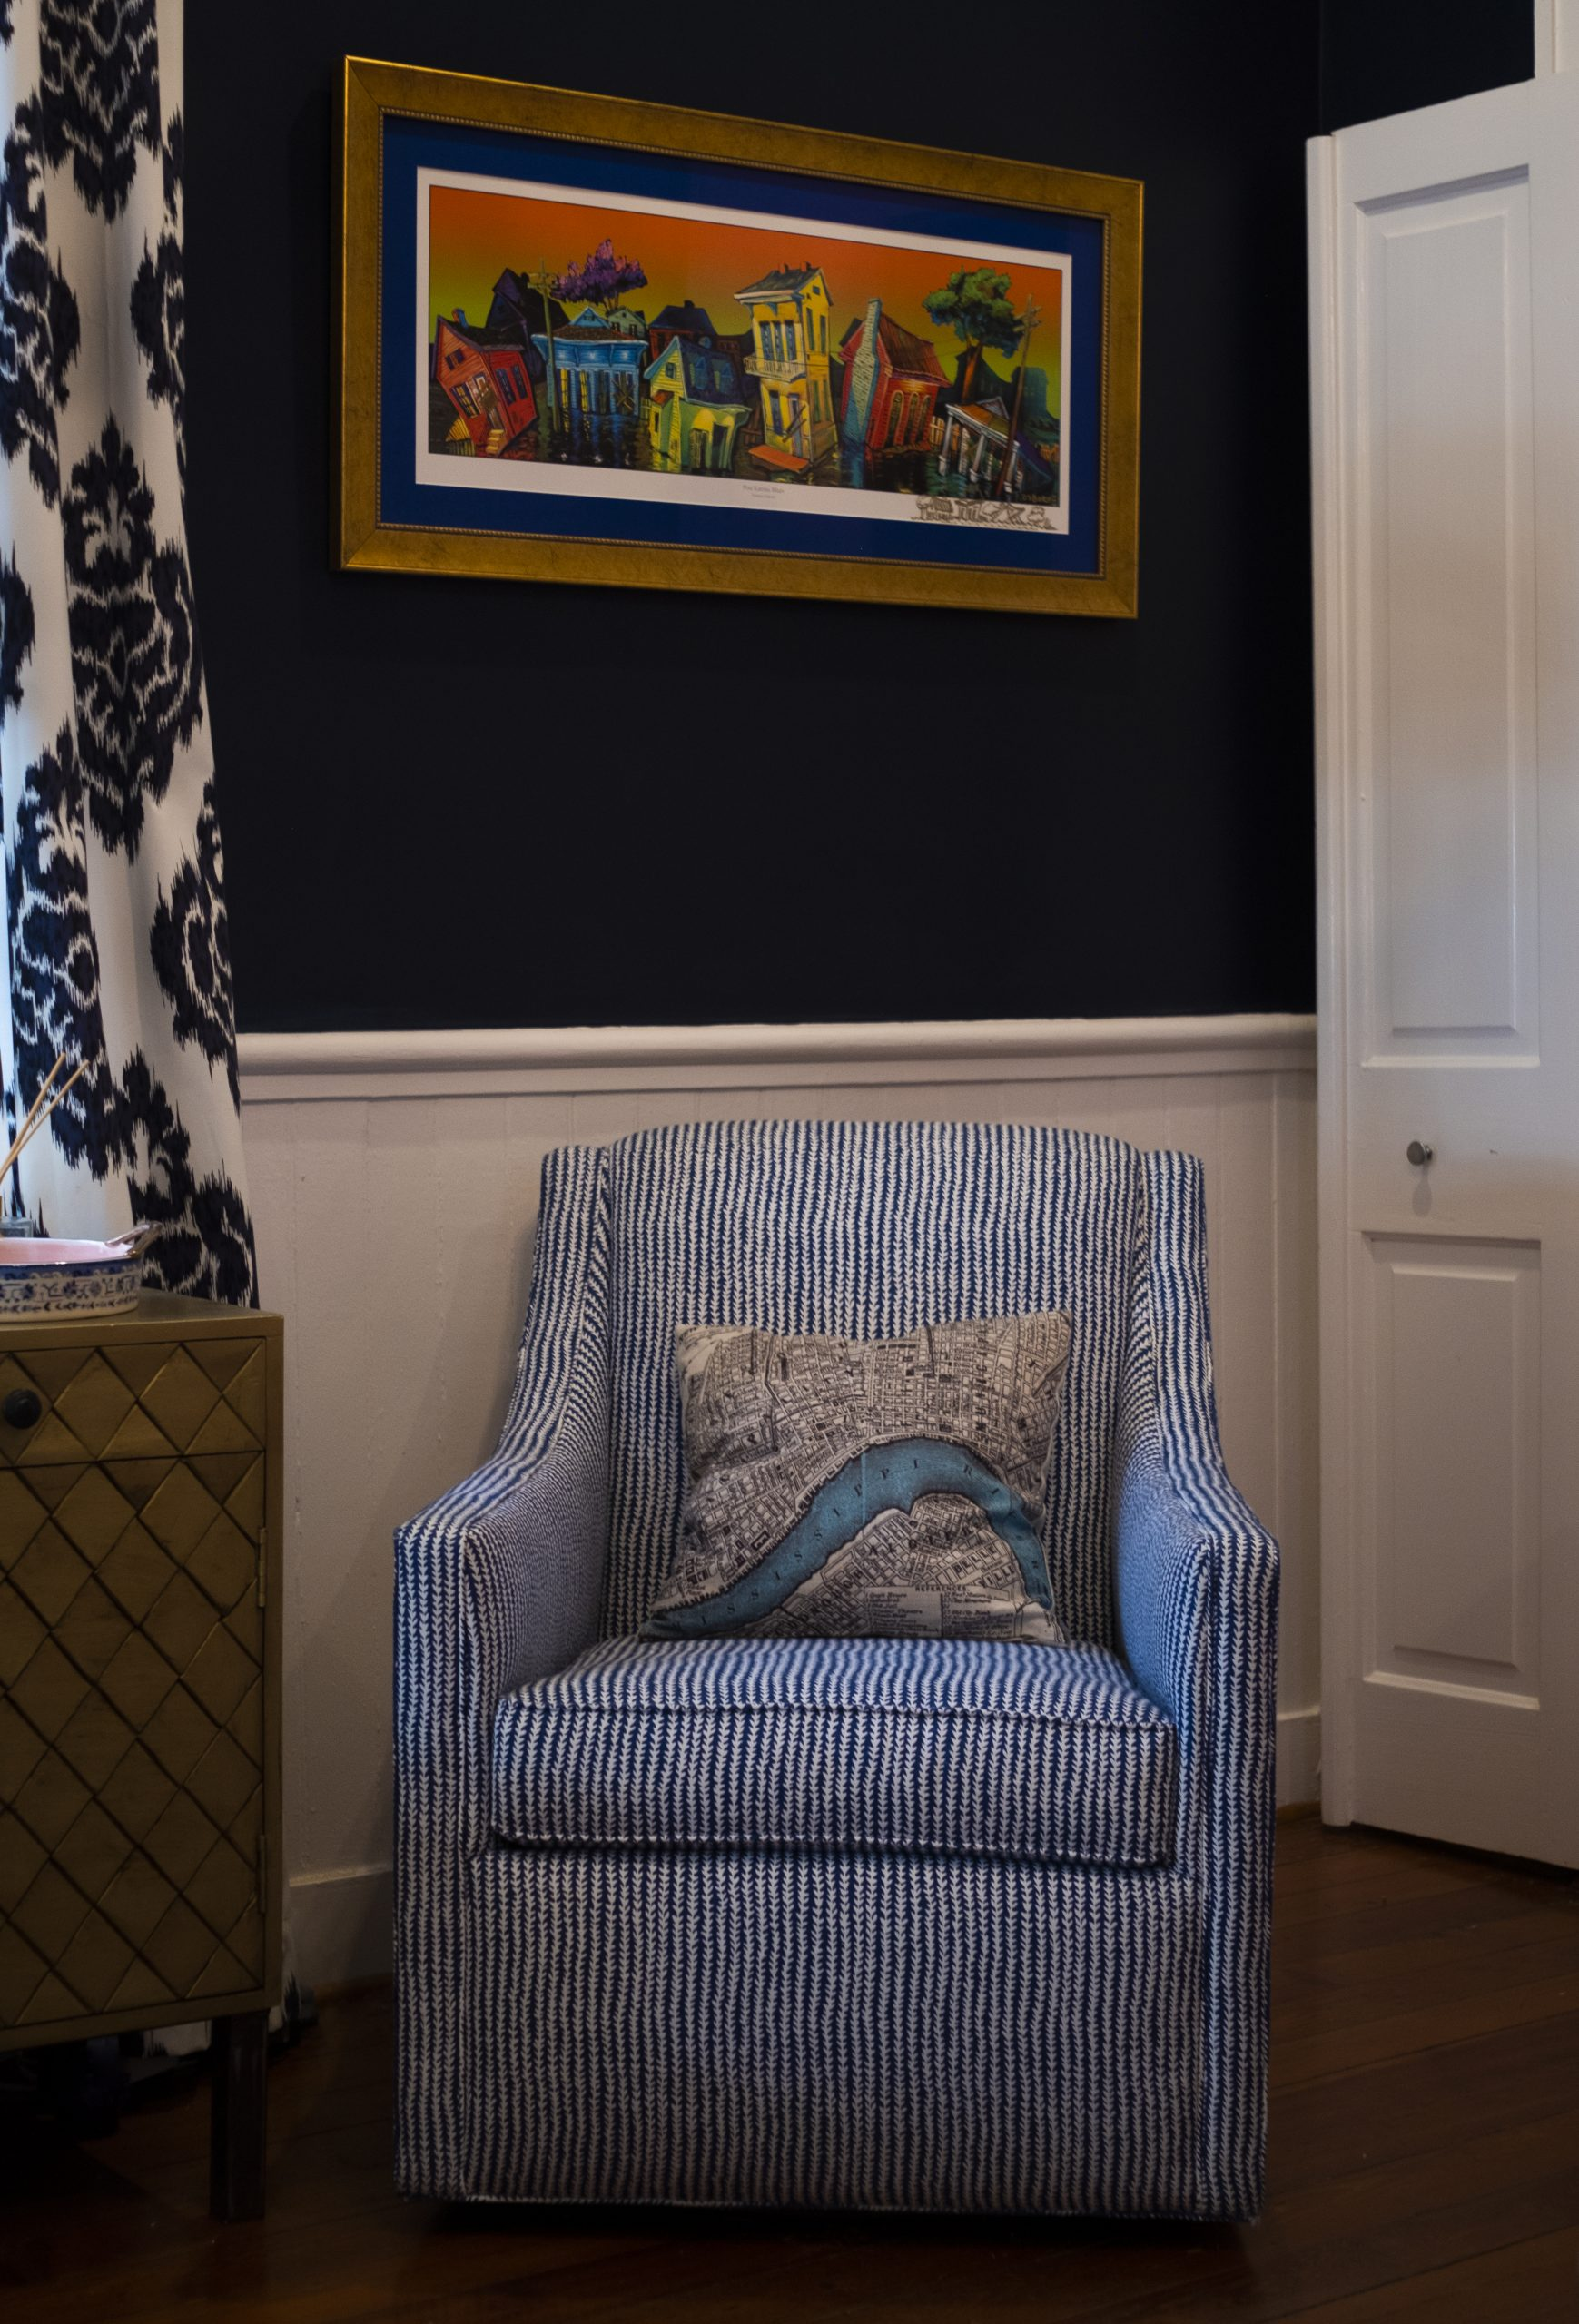 Closeup of Blue and White Pin-Striped Chair, New Orleans Throw Pillow, Vibrant Local Art